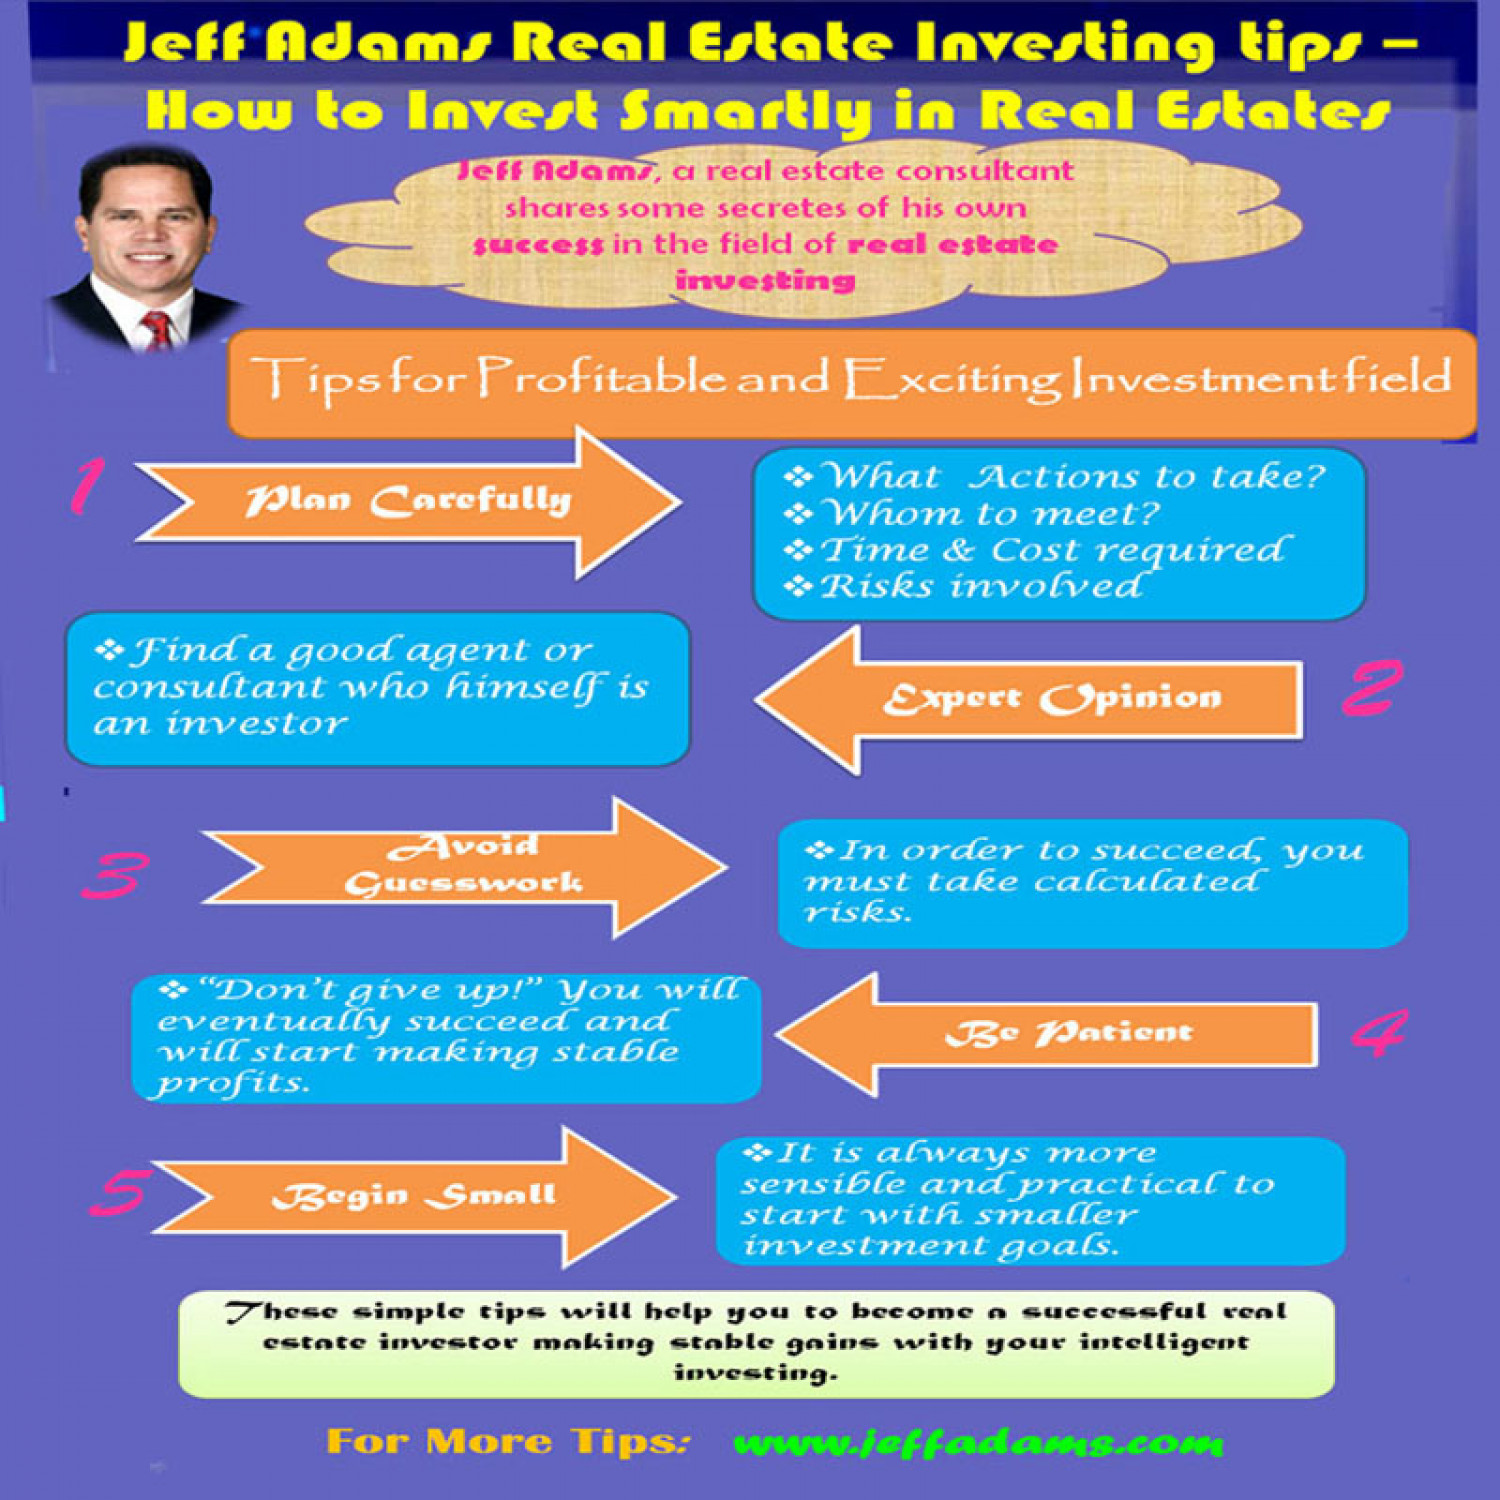 How to Invest Smartly in Real Estate - Jeff Adams Infographic